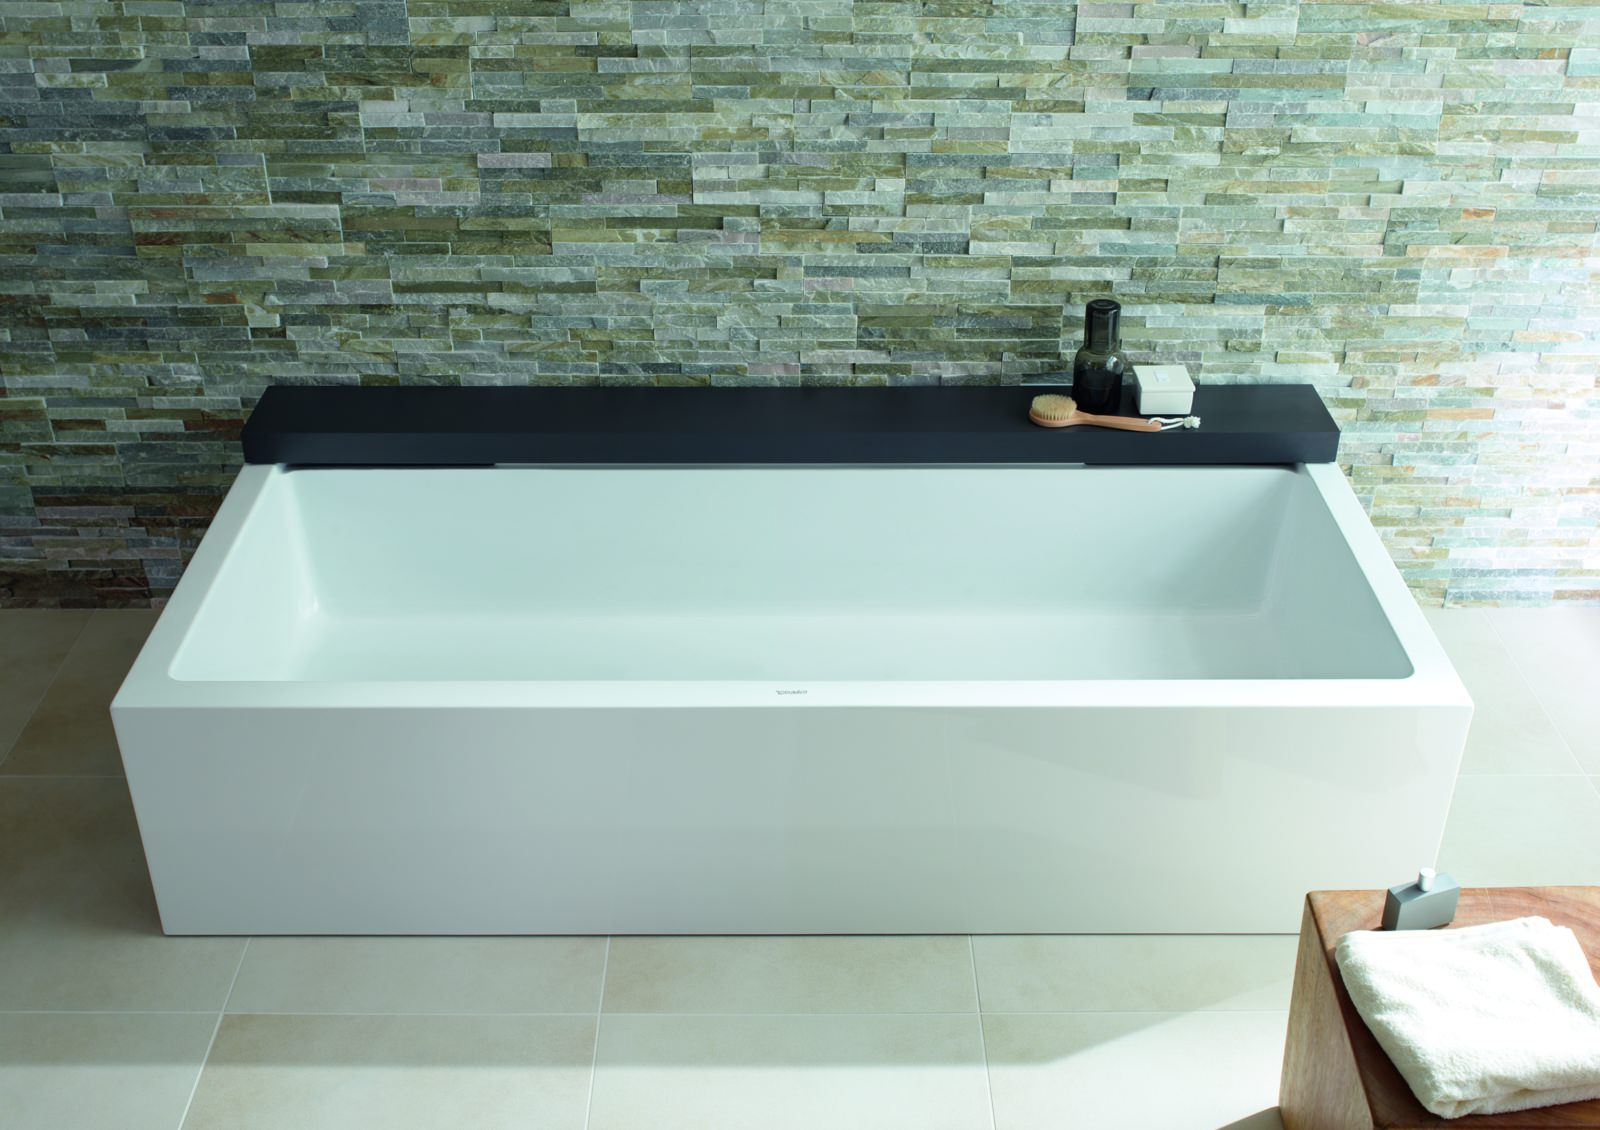 duravit nahho 2100 x 1000mm floatation corner left bath. Black Bedroom Furniture Sets. Home Design Ideas